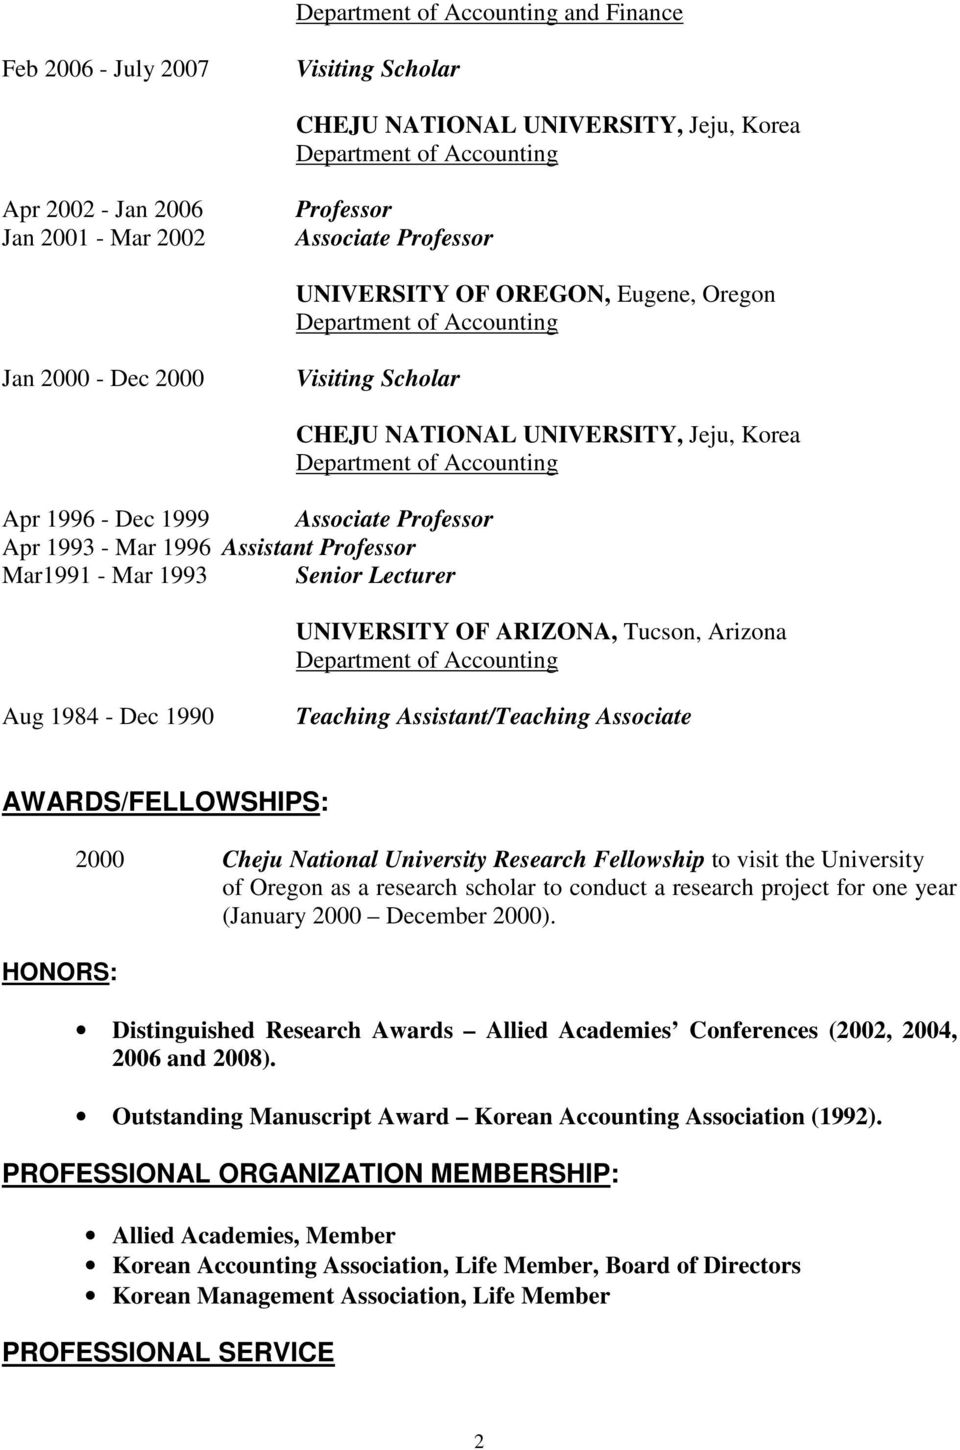 OF ARIZONA, Tucson, Arizona Aug 1984 - Dec 1990 Teaching Assistant/Teaching Associate AWARDS/FELLOWSHIPS: HONORS: 2000 Cheju National University Research Fellowship to visit the University of Oregon